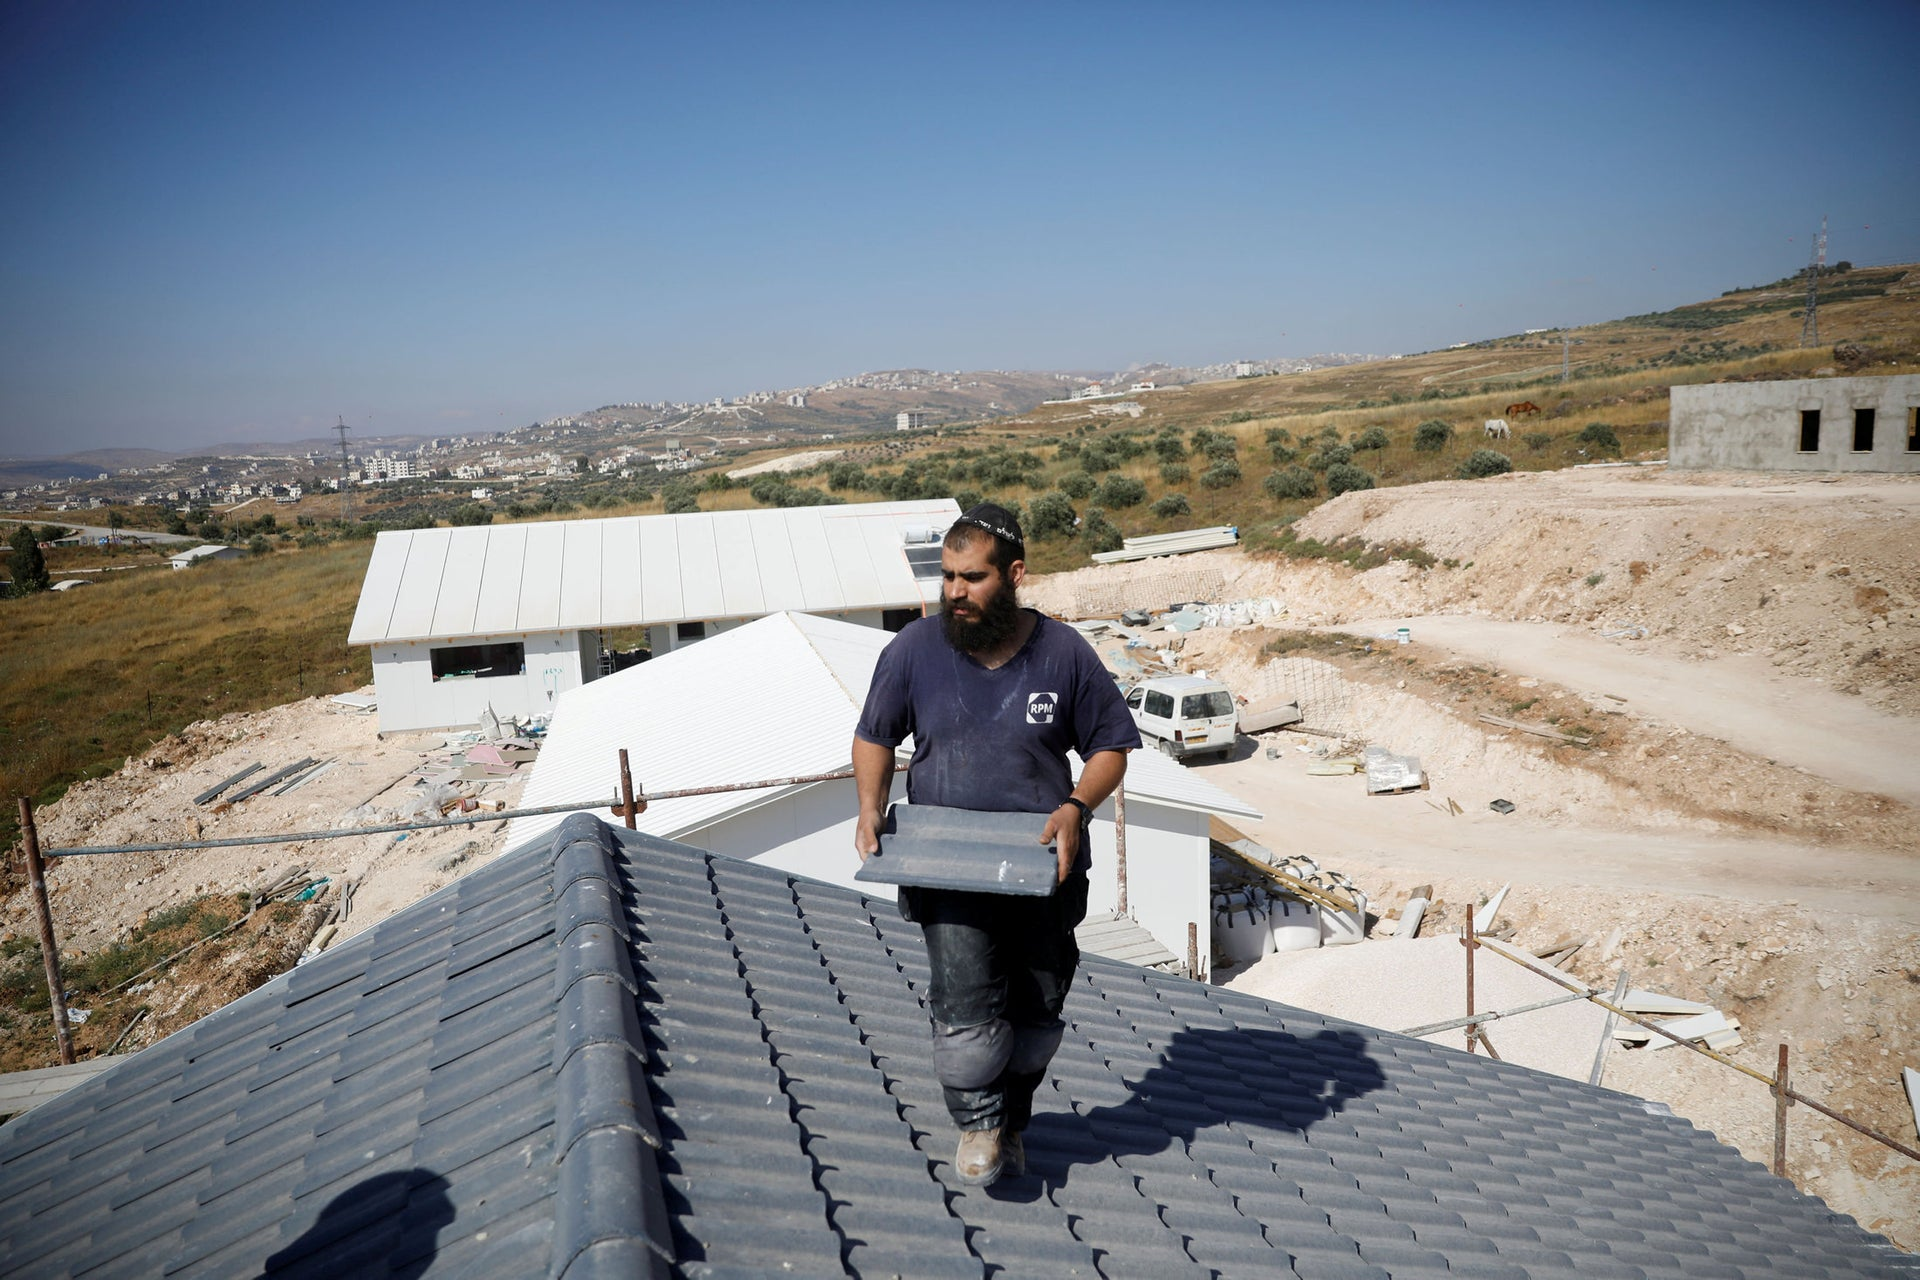 A man works on a house under construction in the Israeli settlement of Havat Gilad